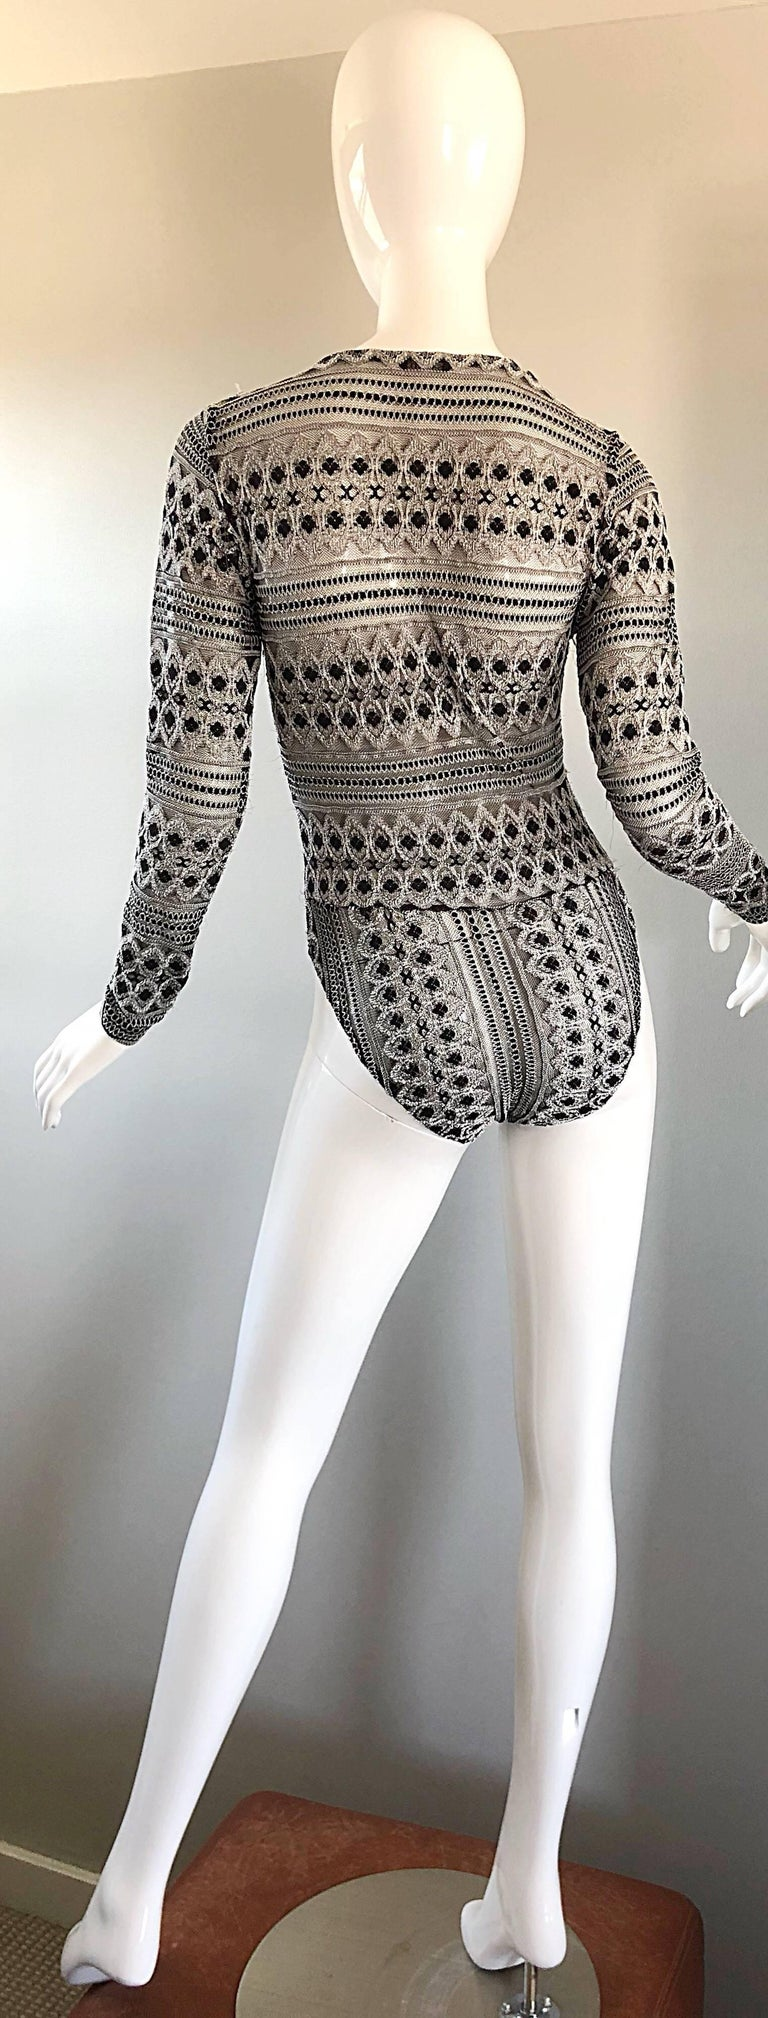 1990s French Black and White Long SLeeve Knit Vintage 90s One Piece Bodysuit In Excellent Condition For Sale In Chicago, IL